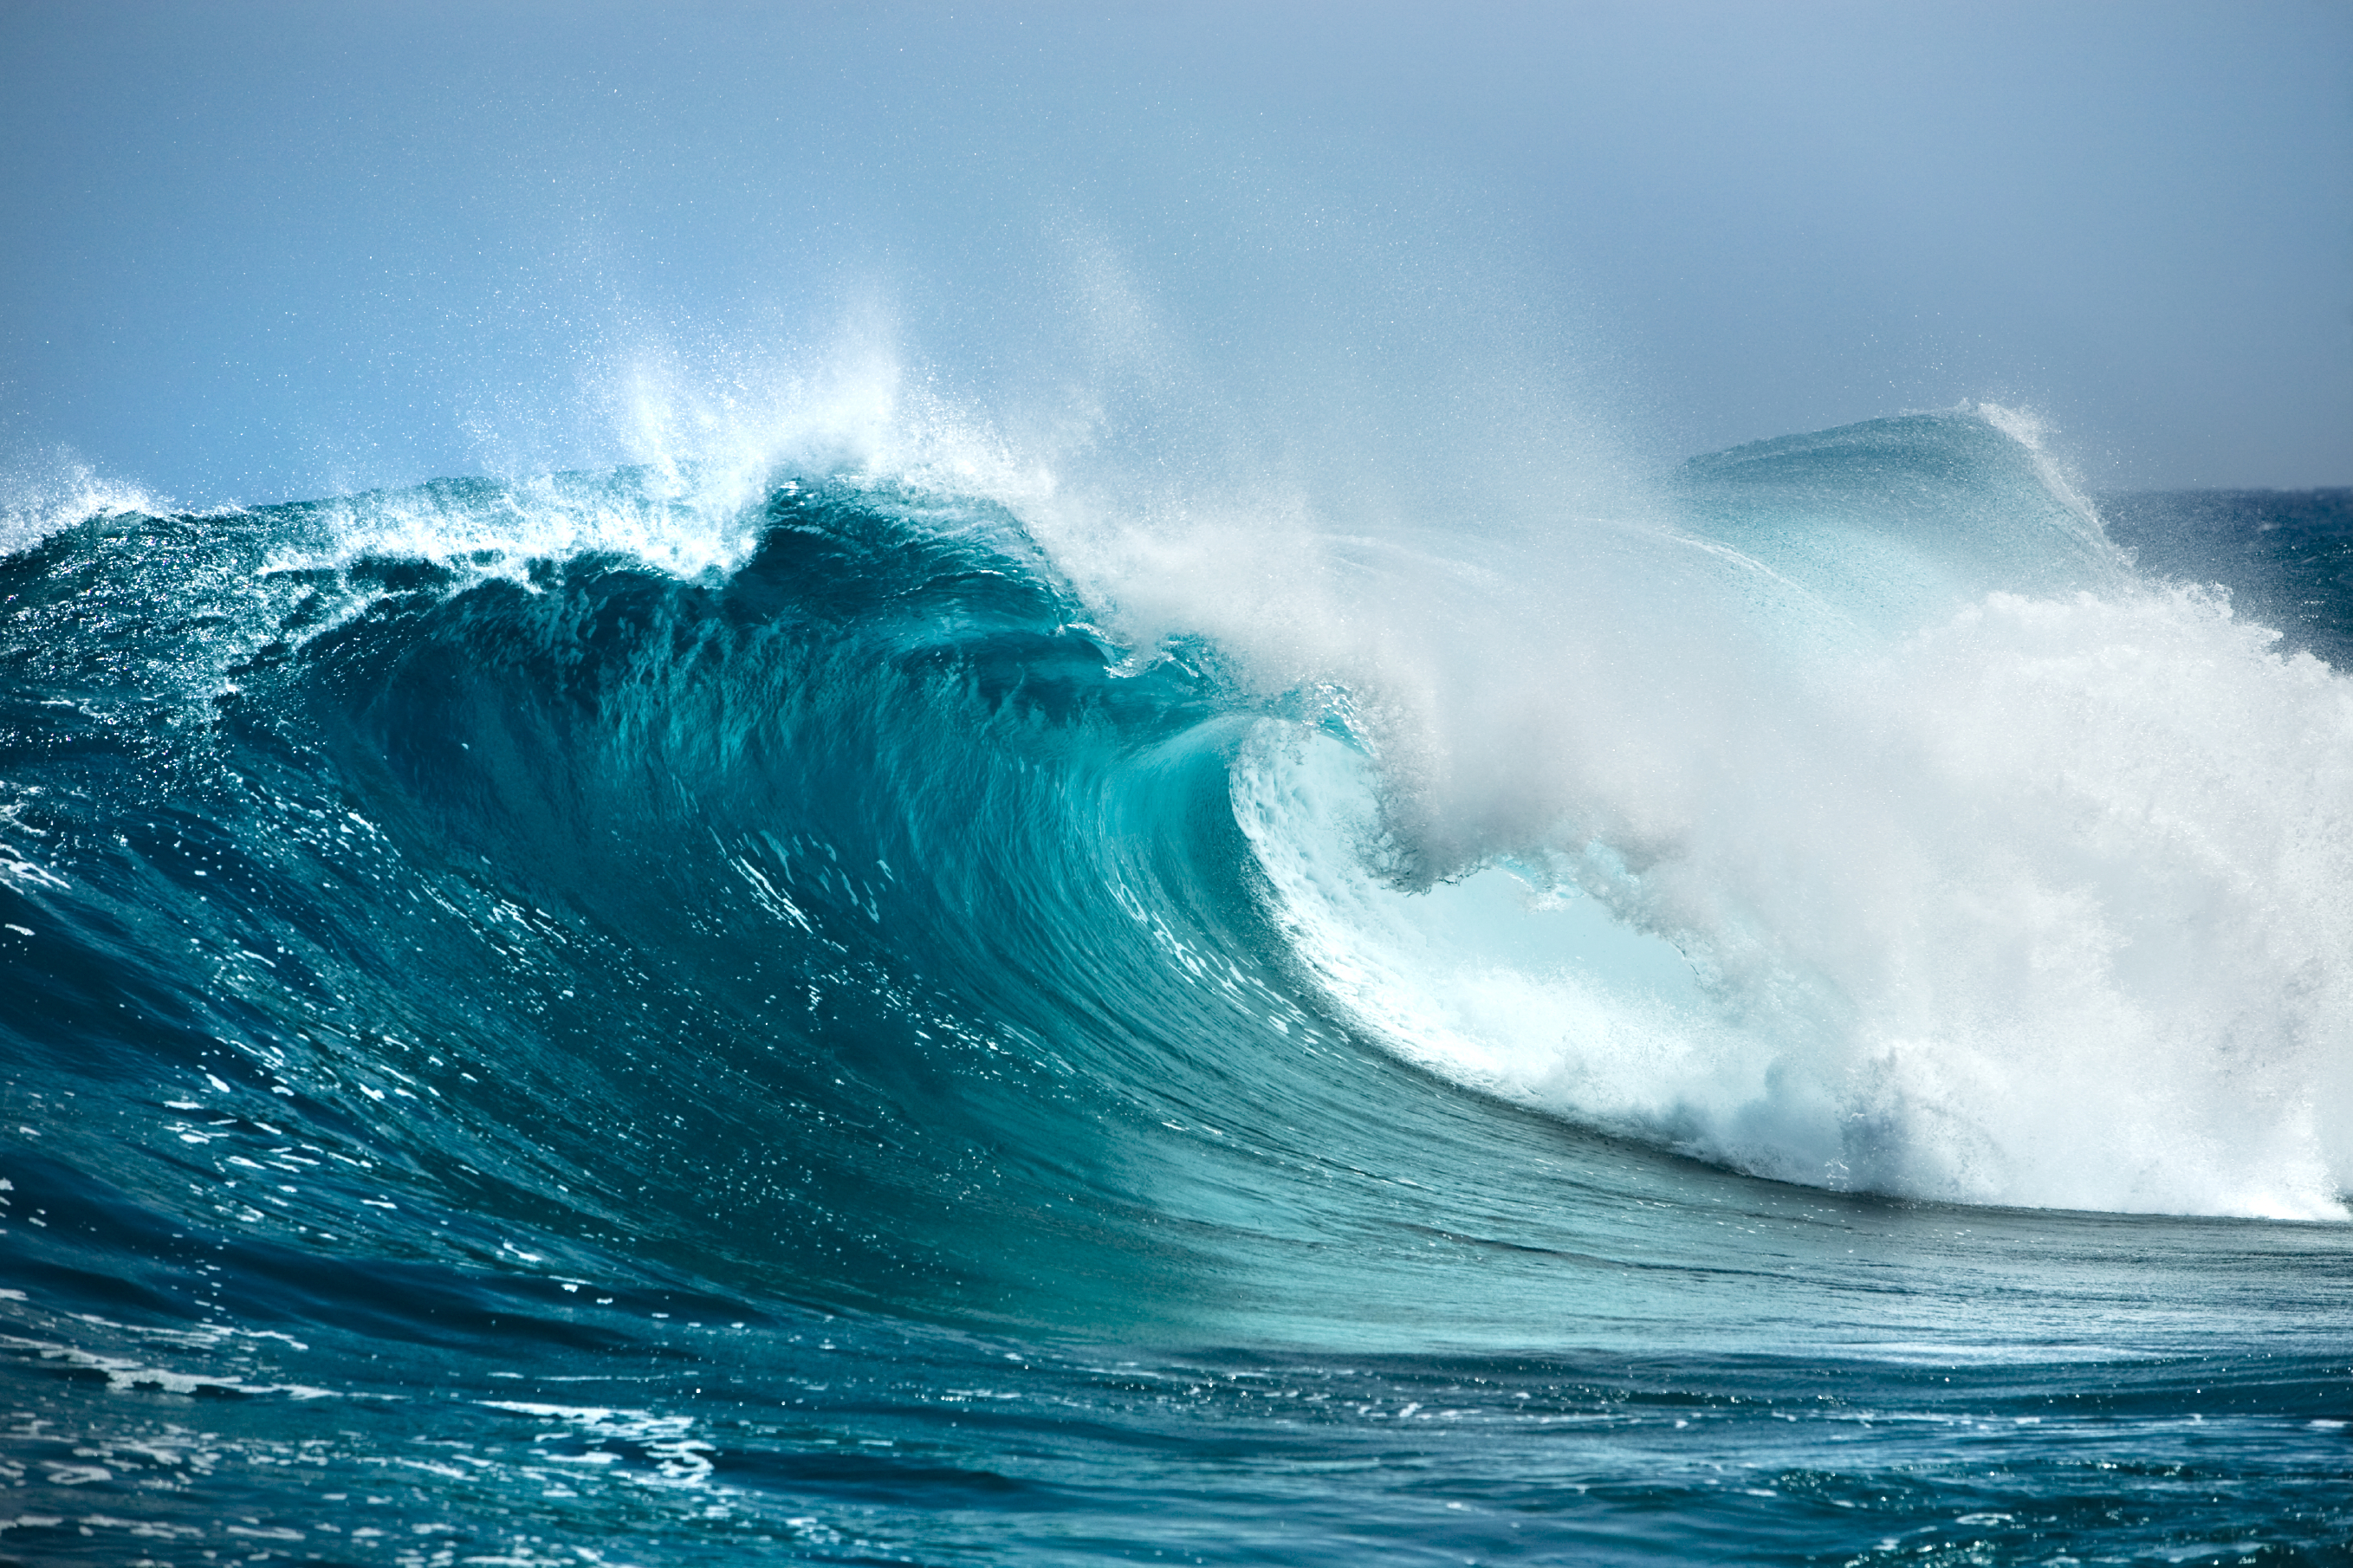 Harnessing the power of waves - CSIROscope